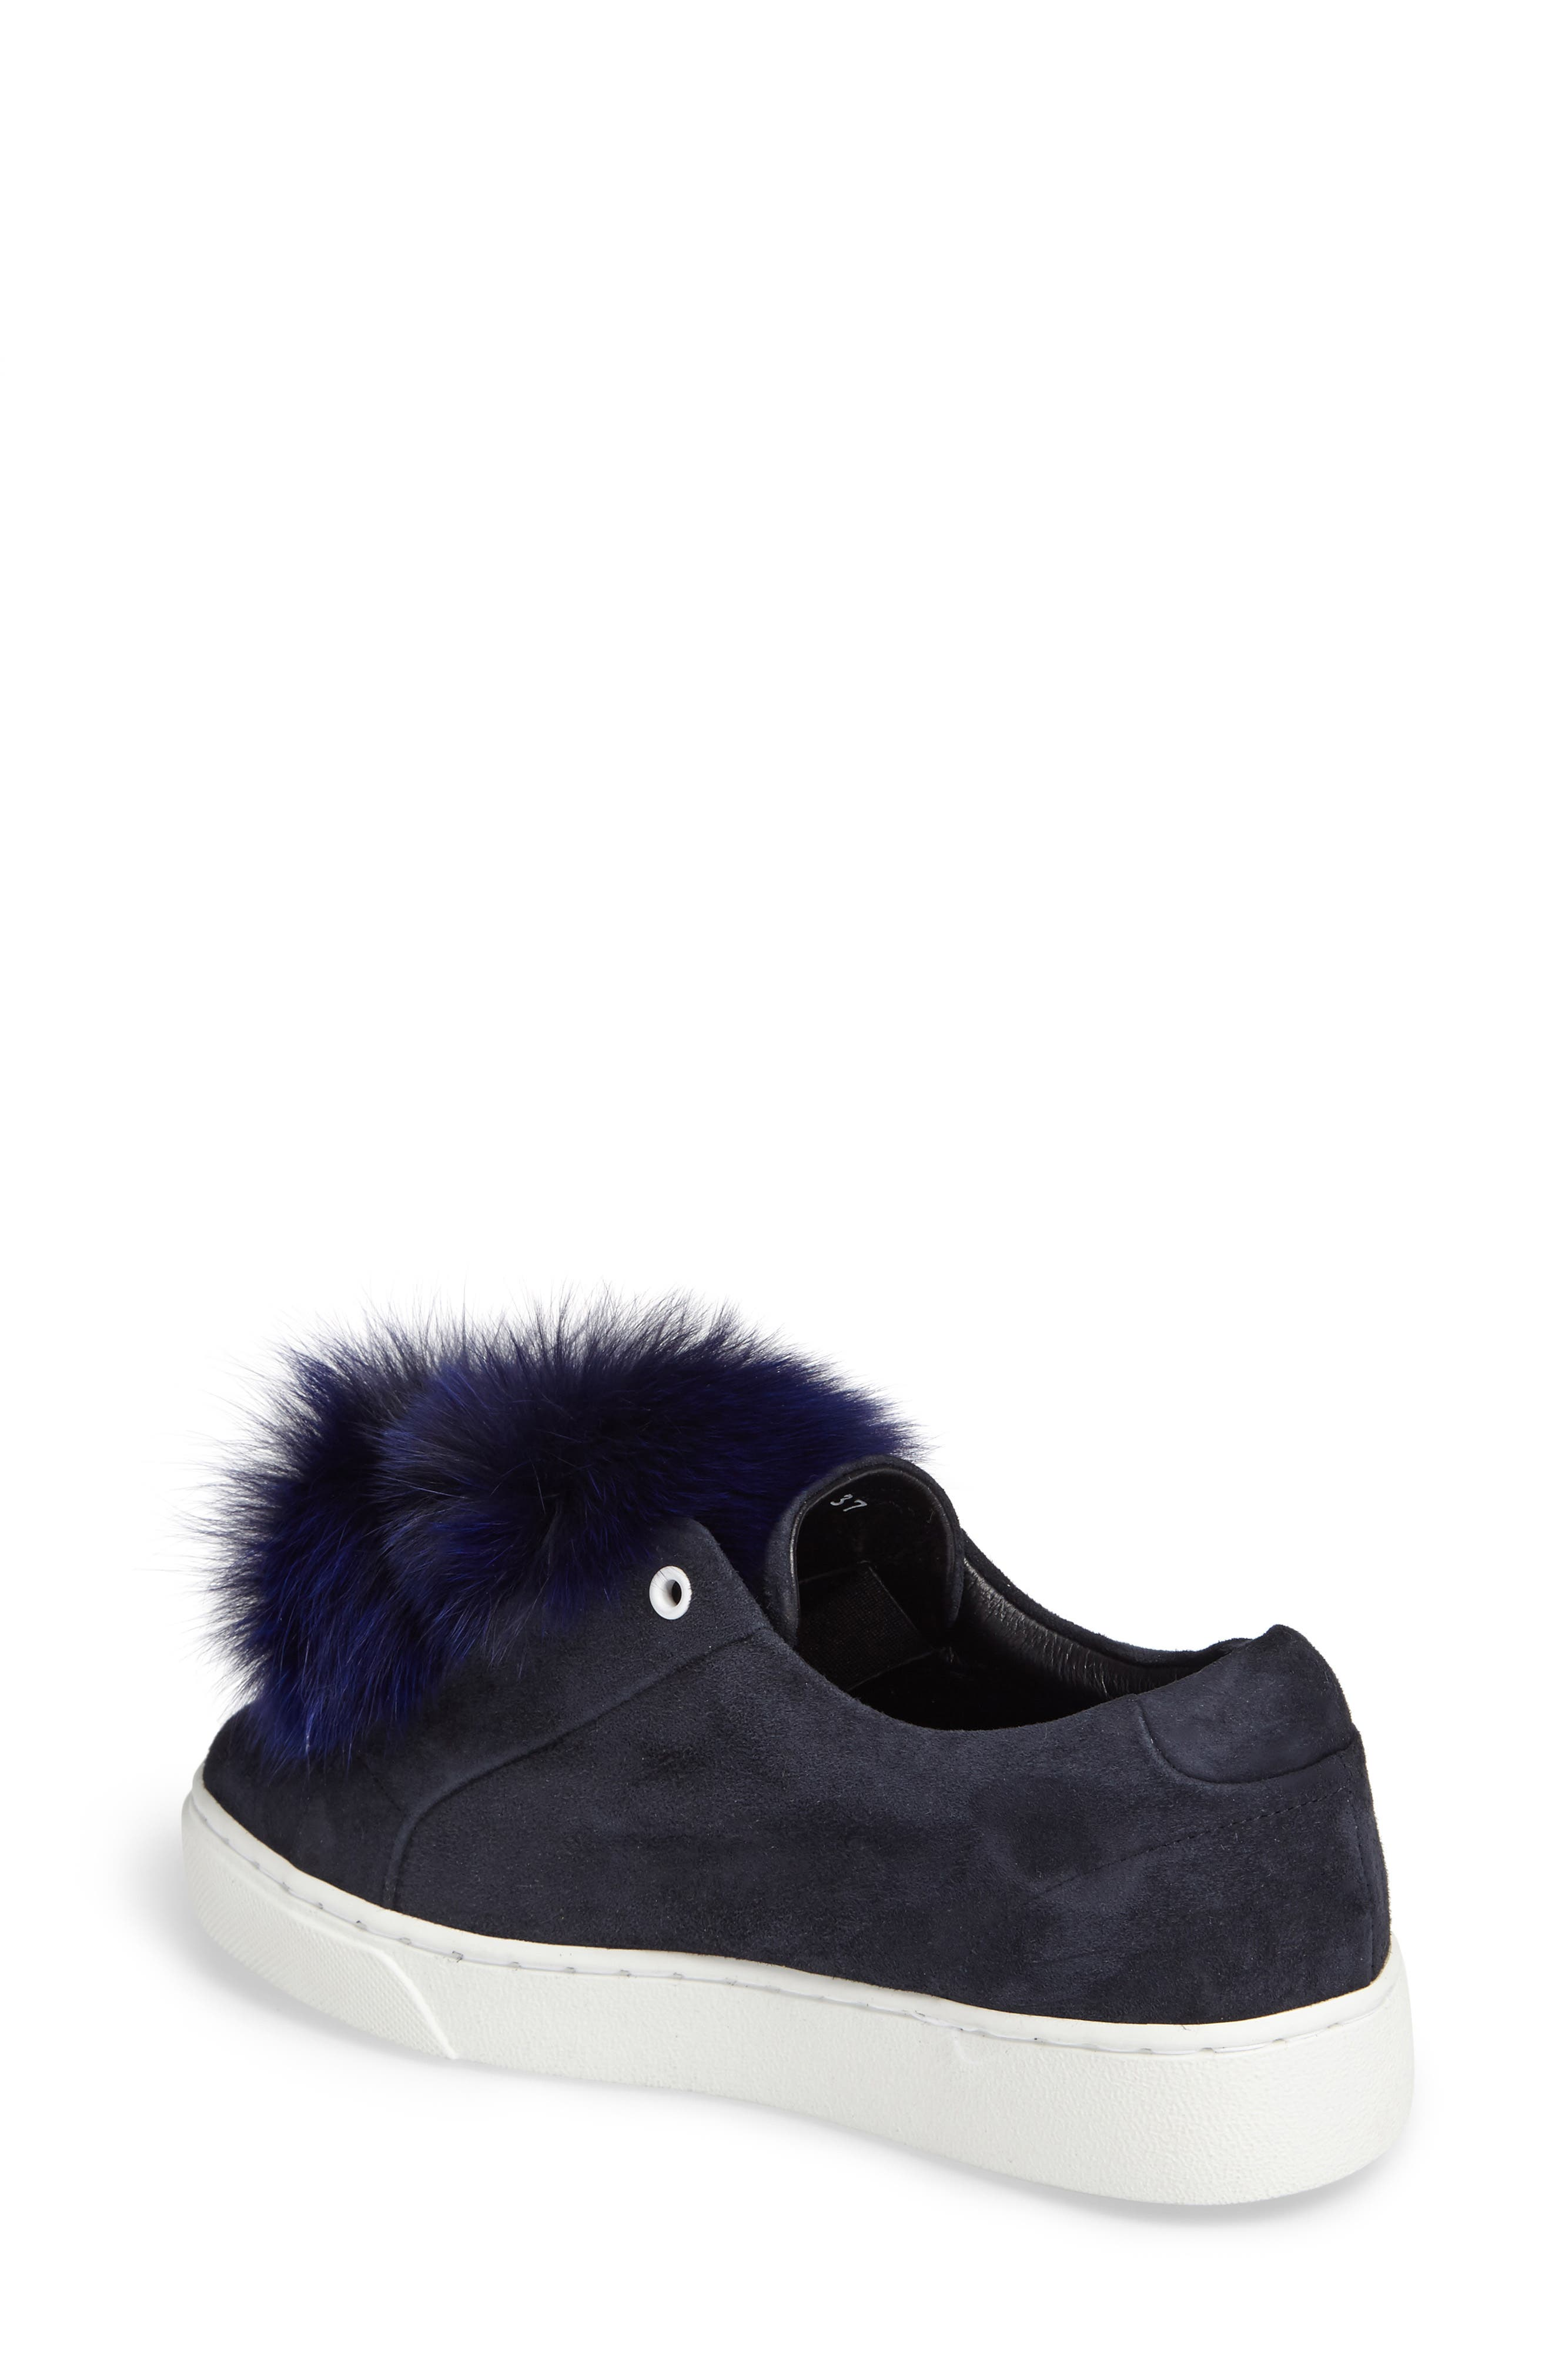 T Genuine Fox Fur Slip-On Sneaker,                             Alternate thumbnail 2, color,                             410